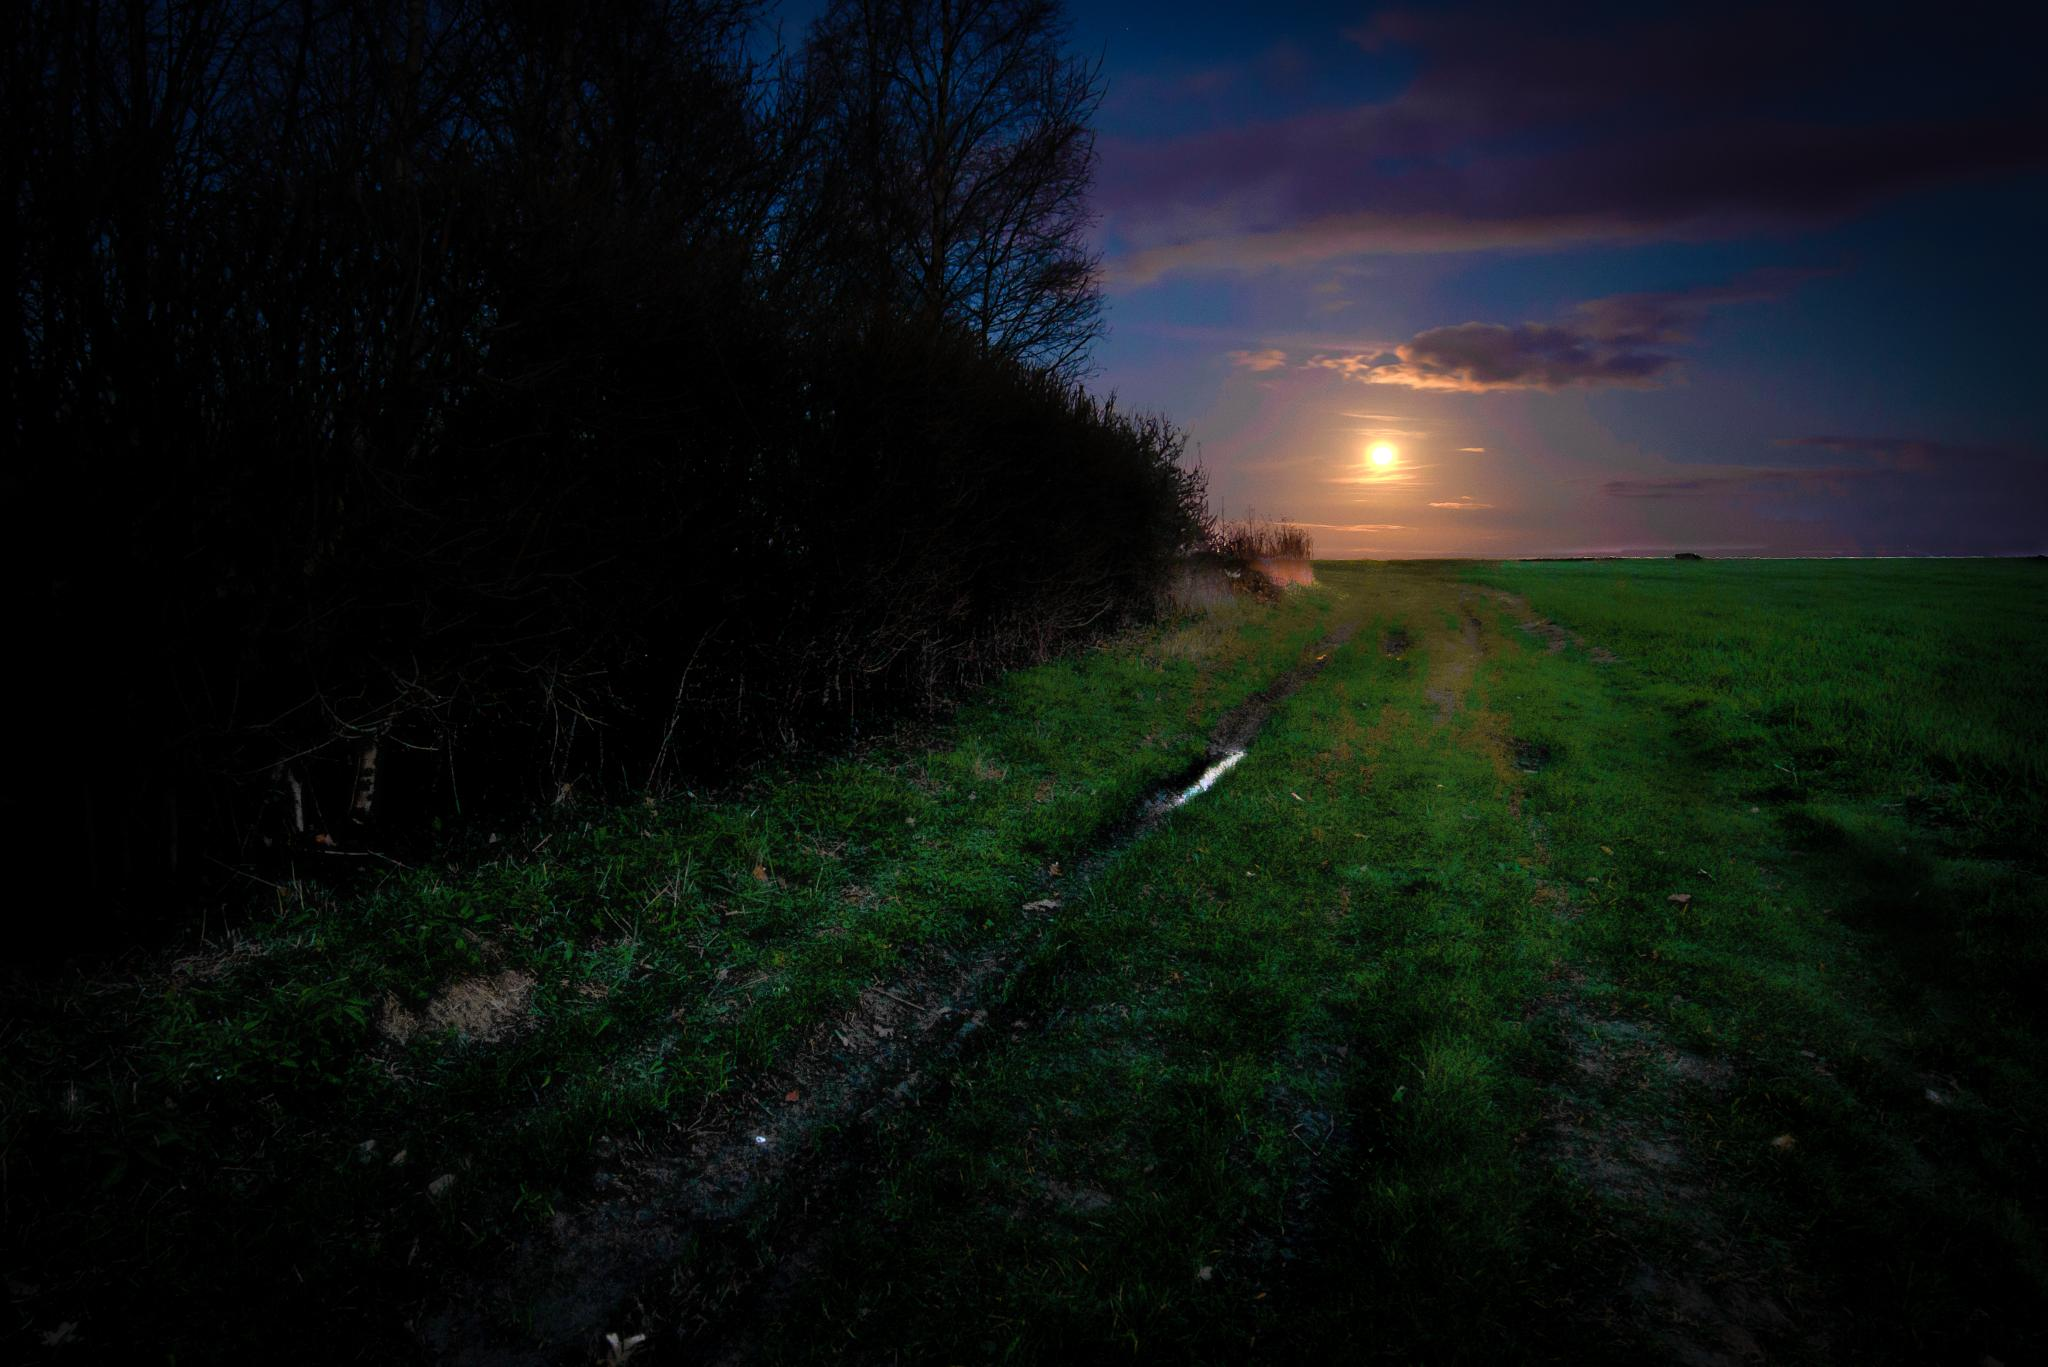 Follow the Track to the Moon by 39matt